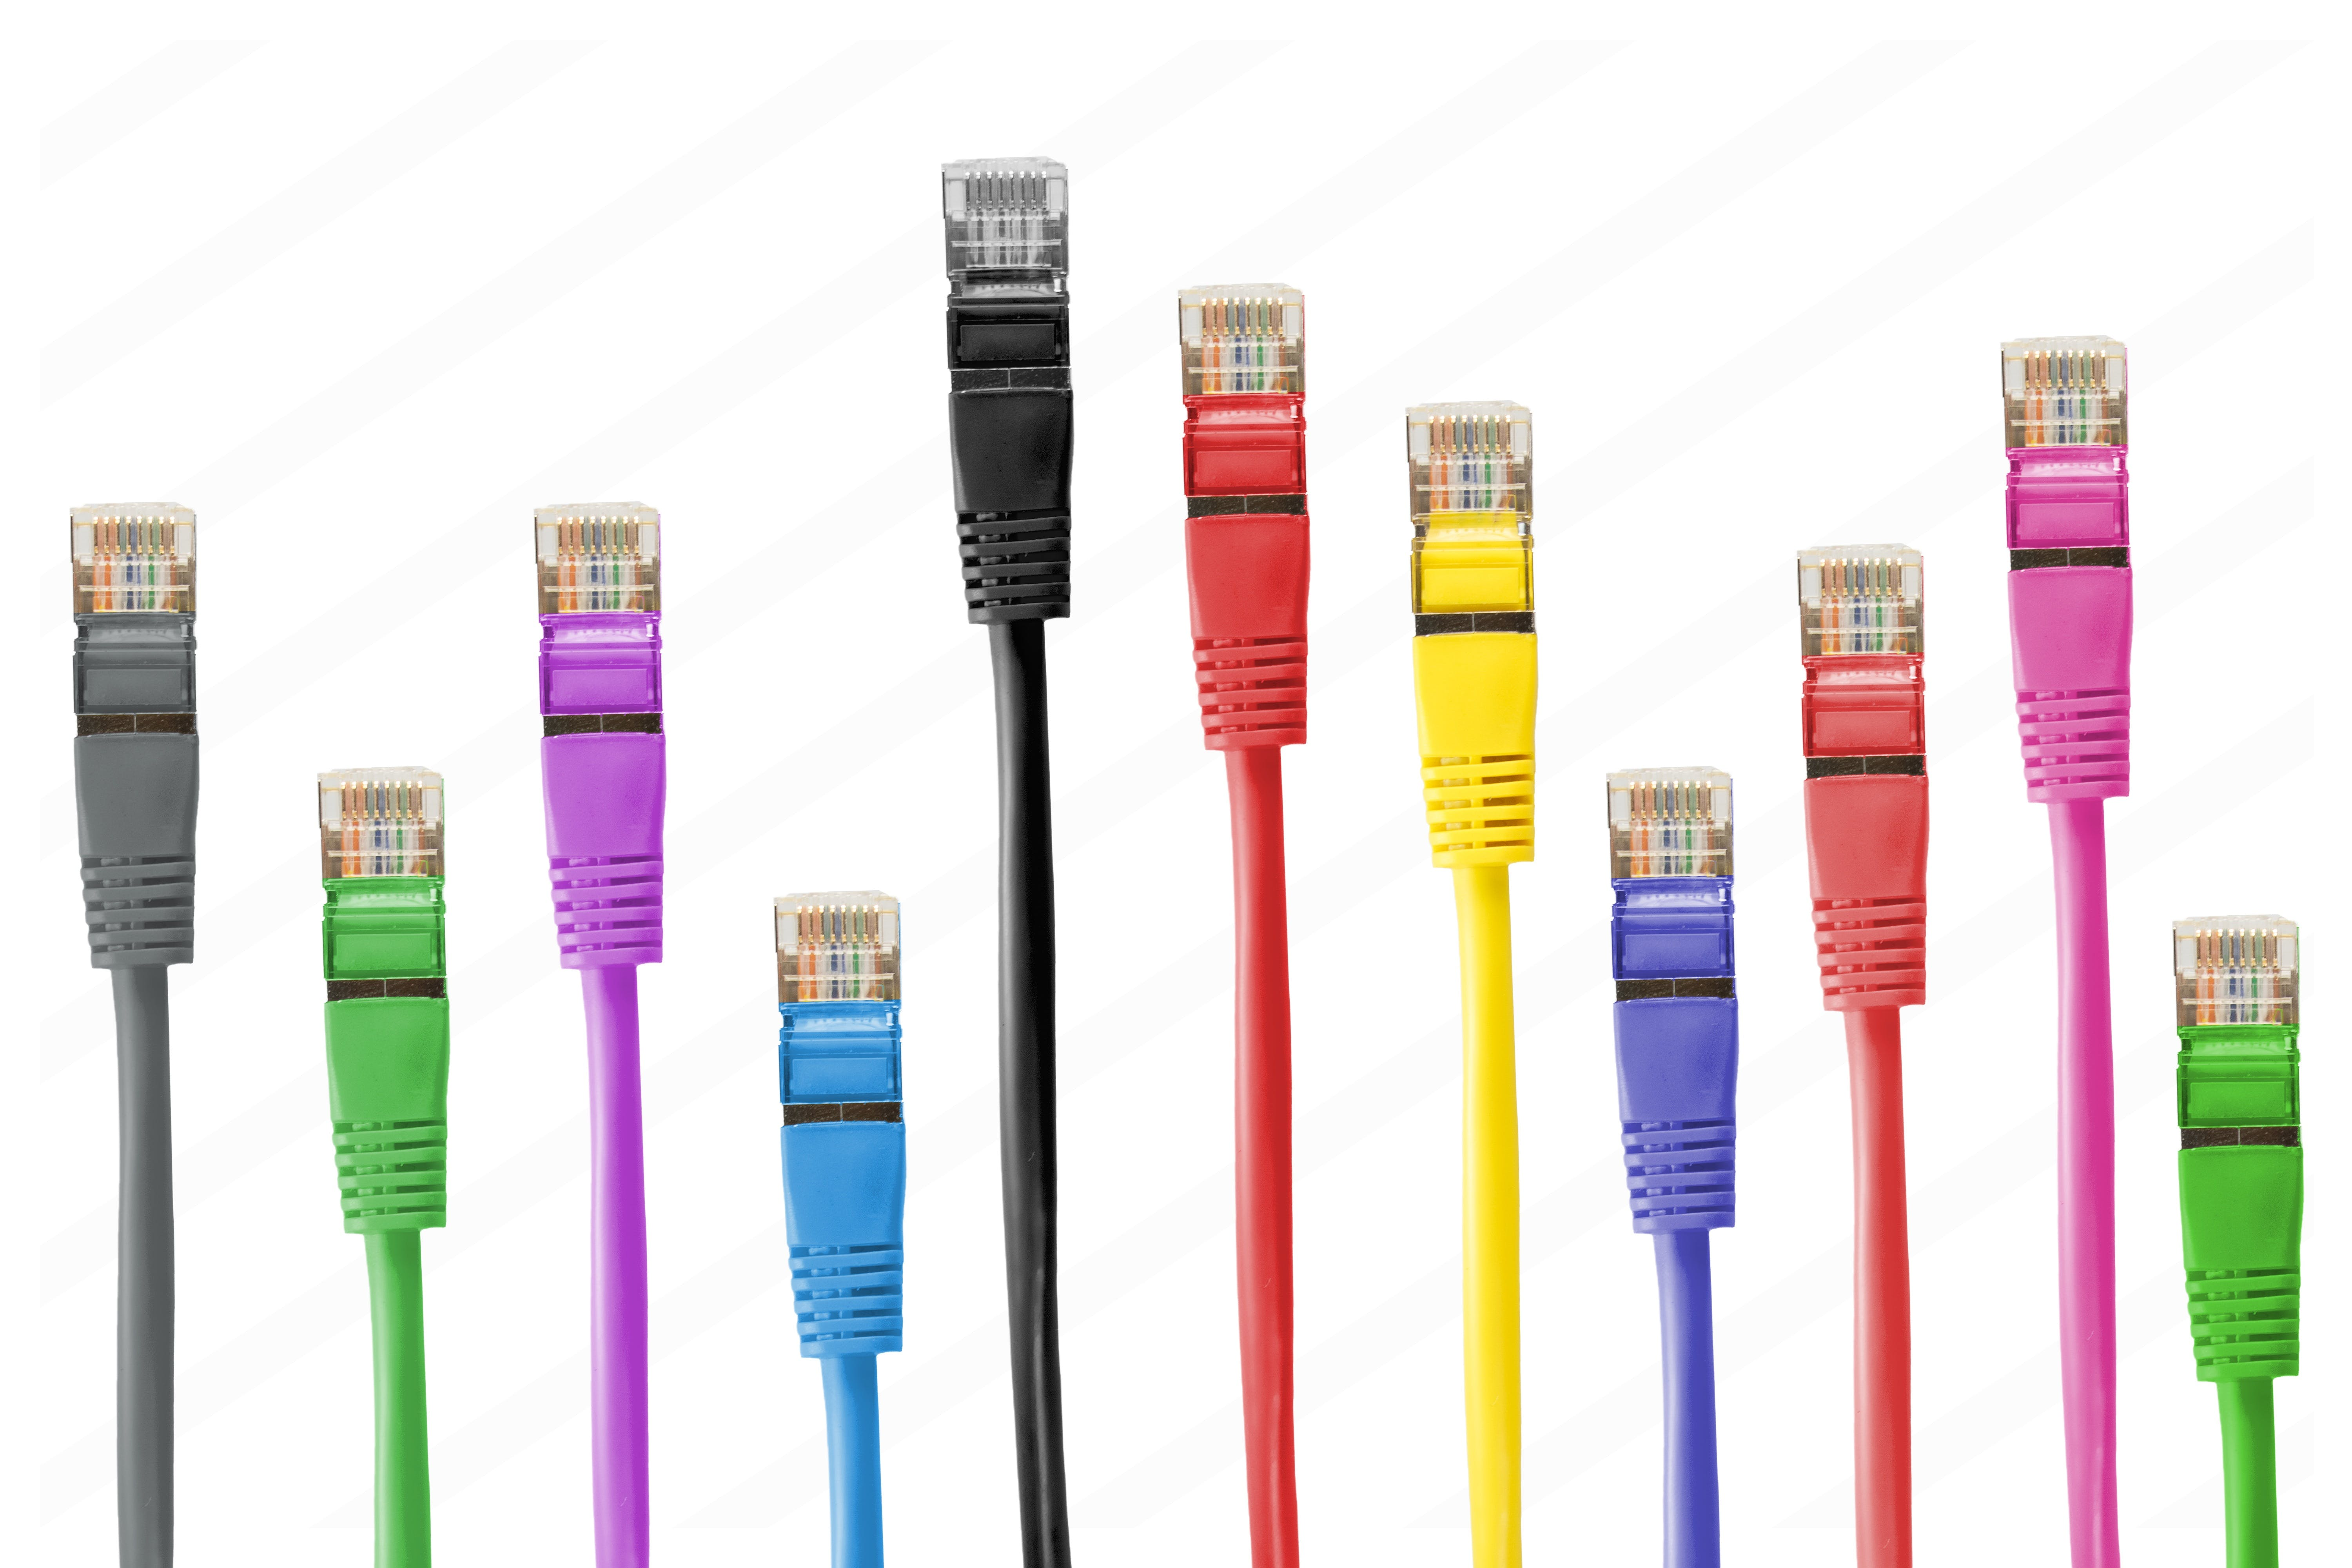 Internet Cable Lot on White Backgroudn